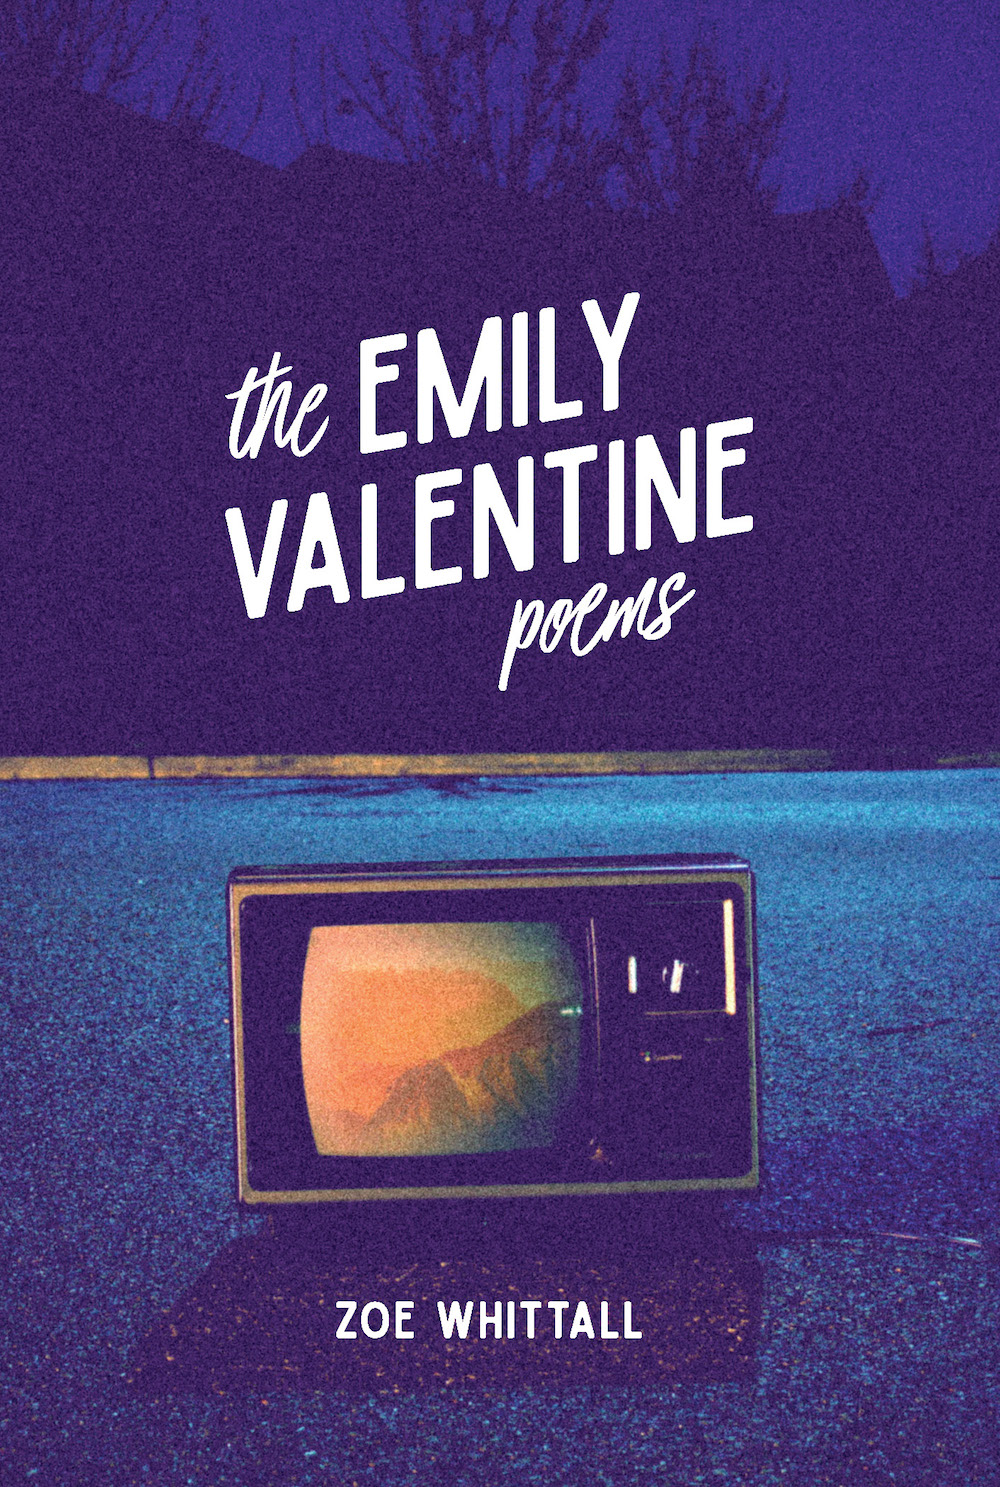 The Emily Valentine Poems